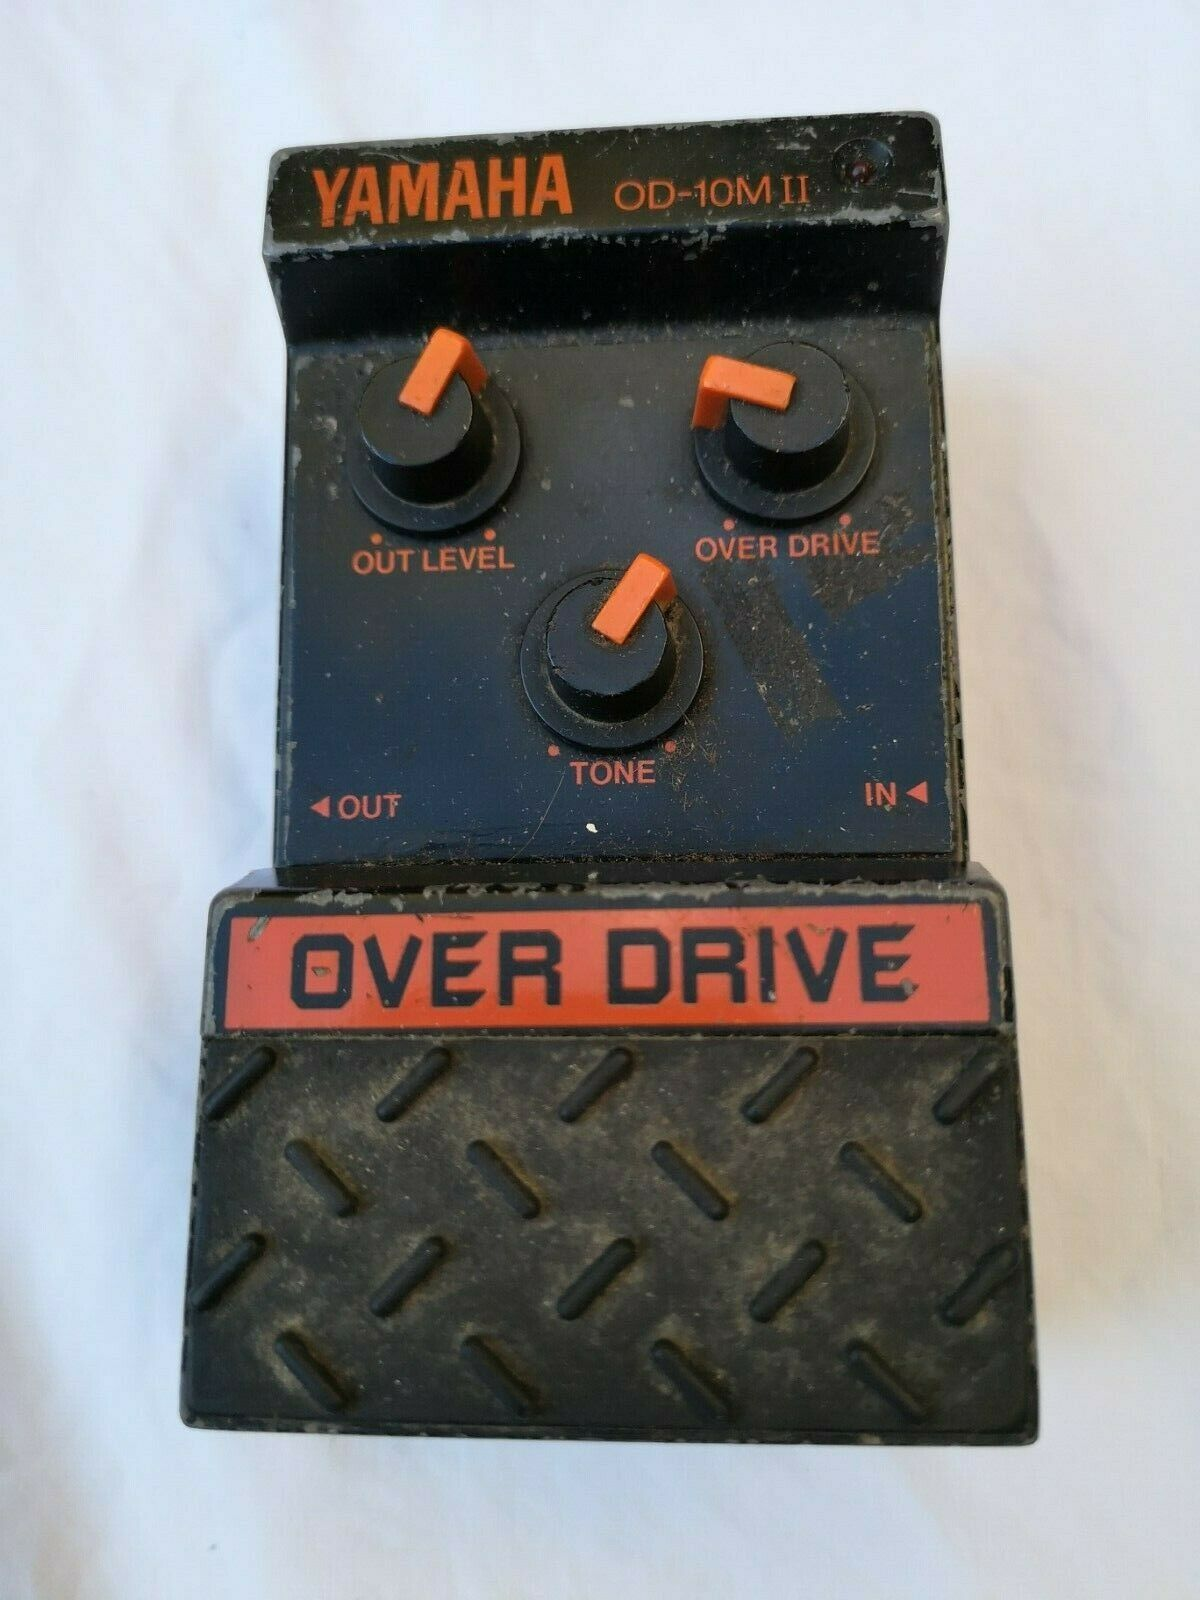 YAMAHA  OD-10M II OVERDRIVE - FREE NEXT DAY DELIVERY IN THE UK